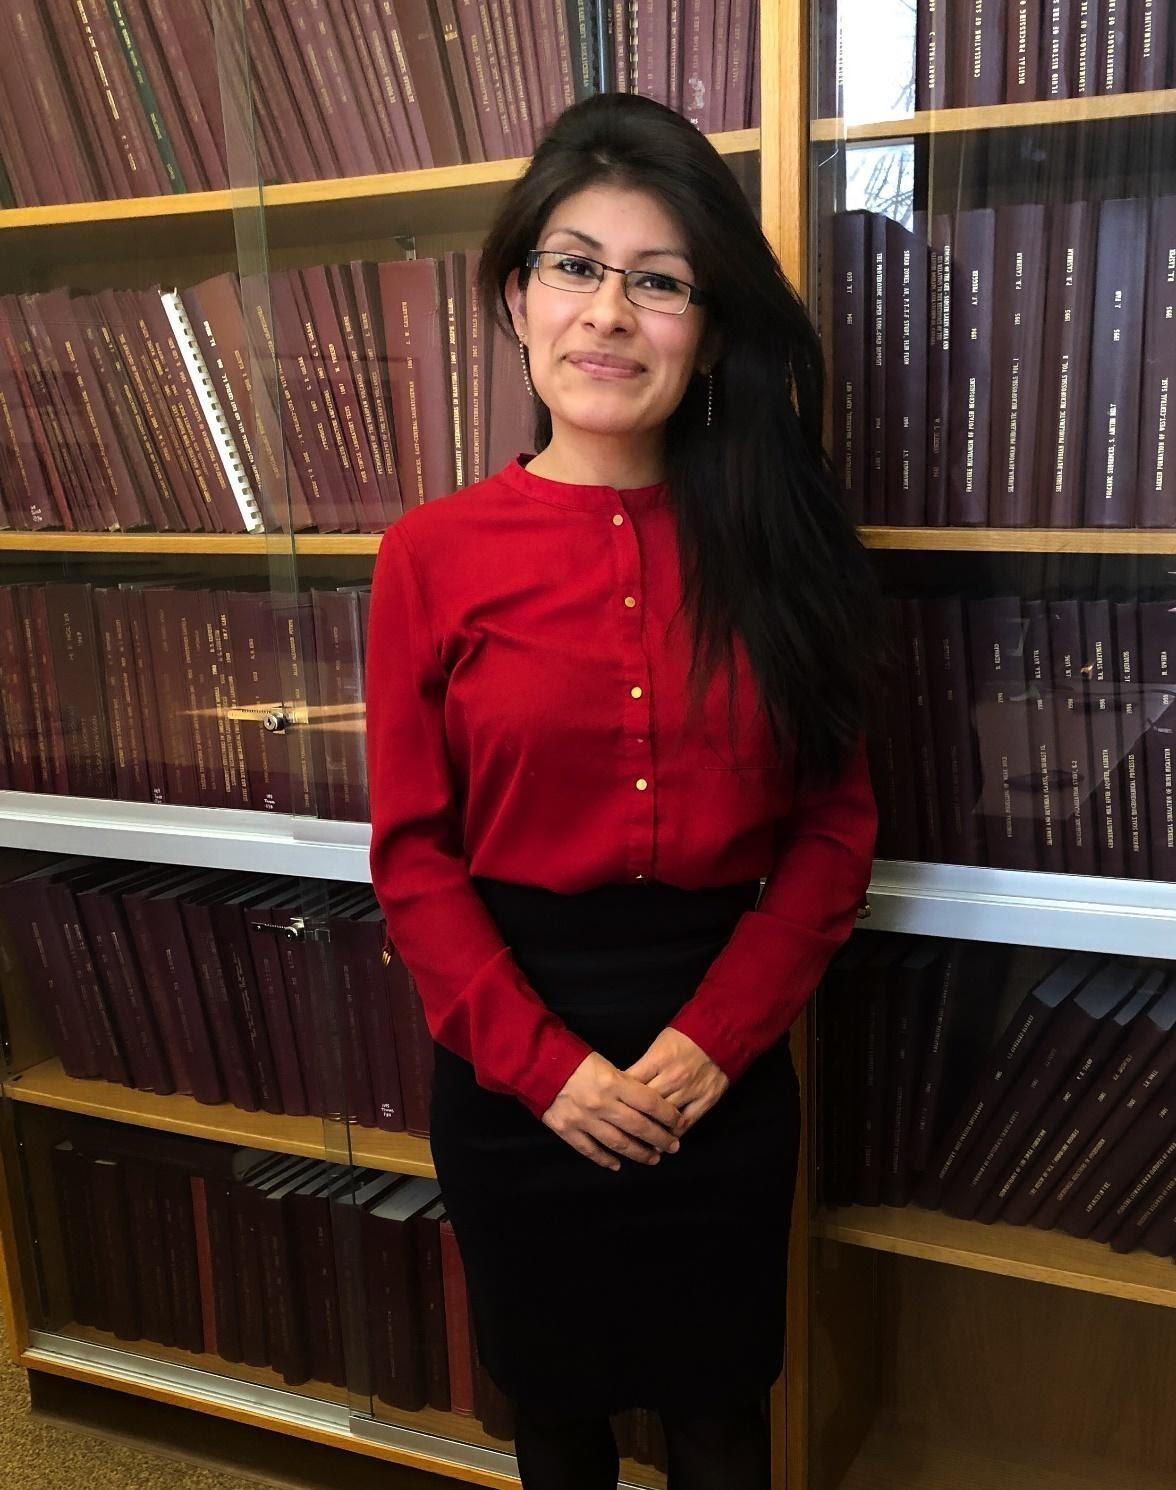 Emerita Mendoza Rengifo standing in front of a tall bookcase wall, wearing a red shirt and drak brown hair down.